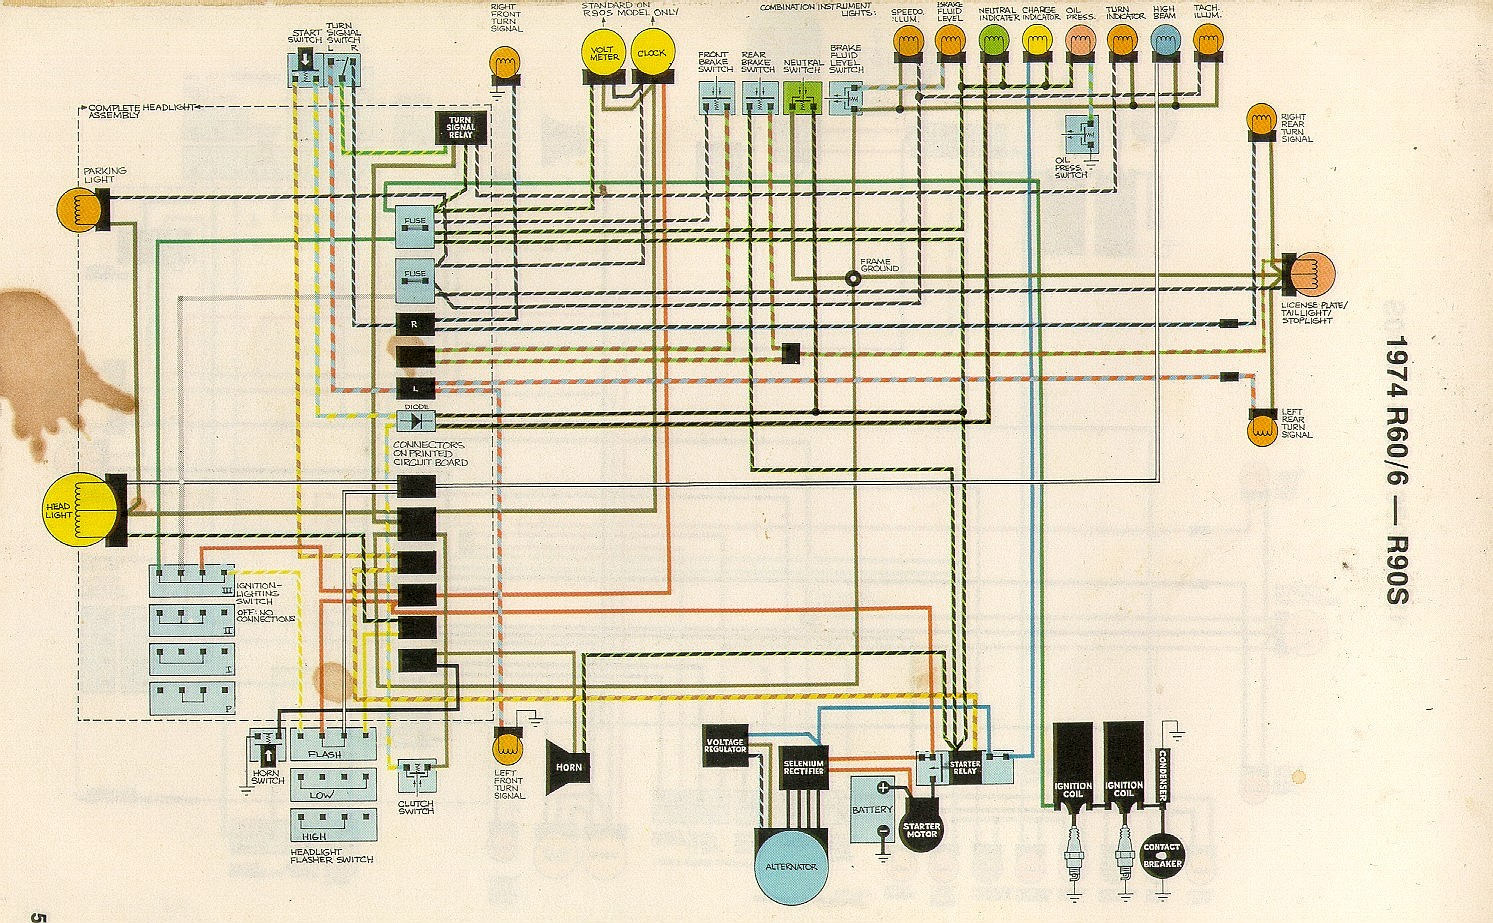 74 5 united articles wiring diagrams bmw r75/5 wiring diagram at gsmx.co